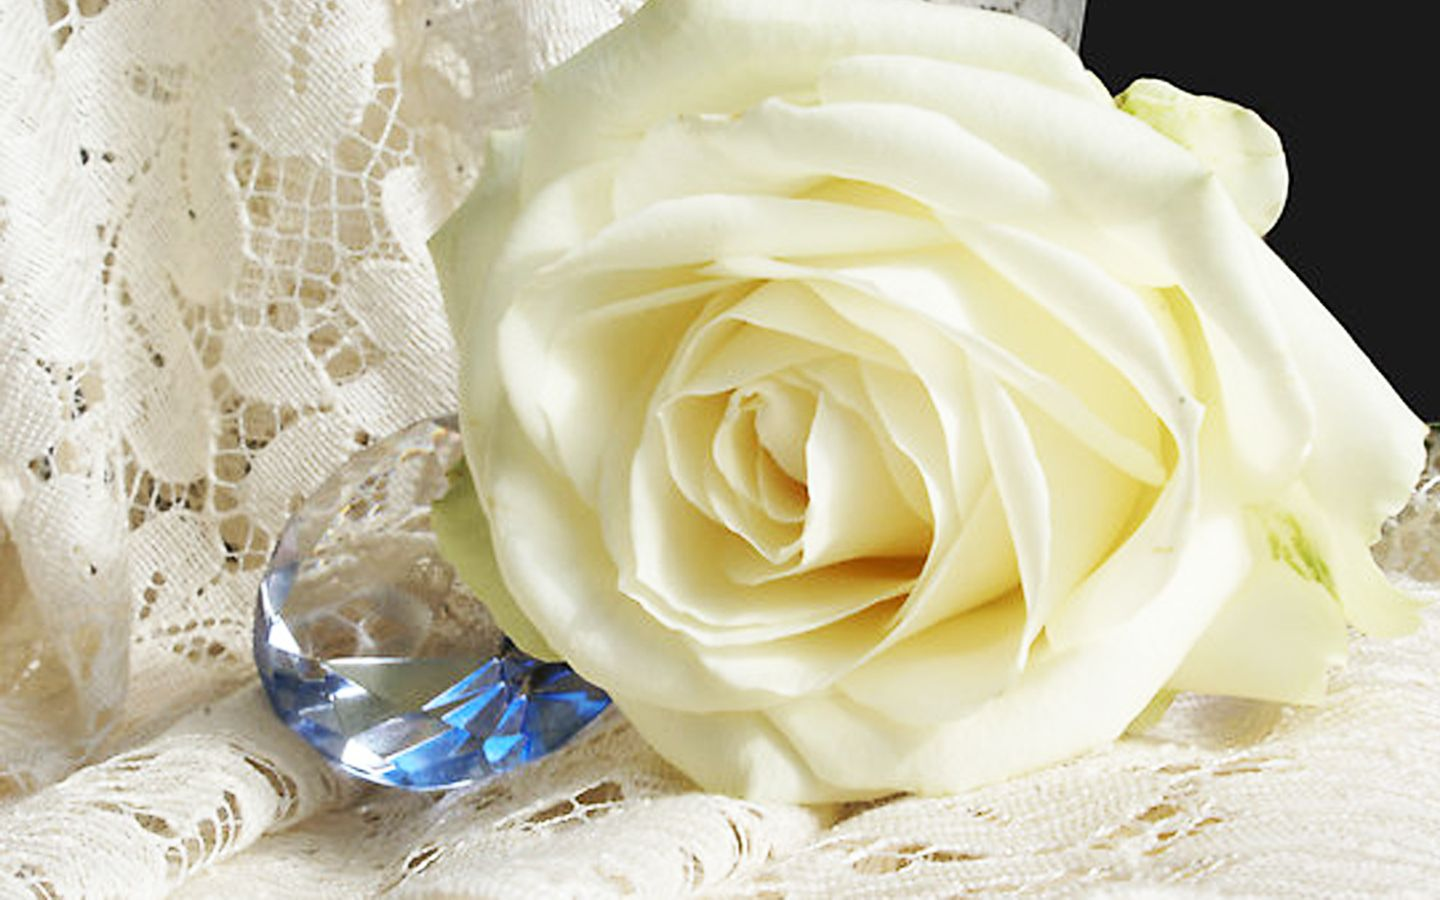 Pin By Wallpapers Hd Desktop On White Color Purity White Roses Wallpaper White Roses White Flower Wallpaper